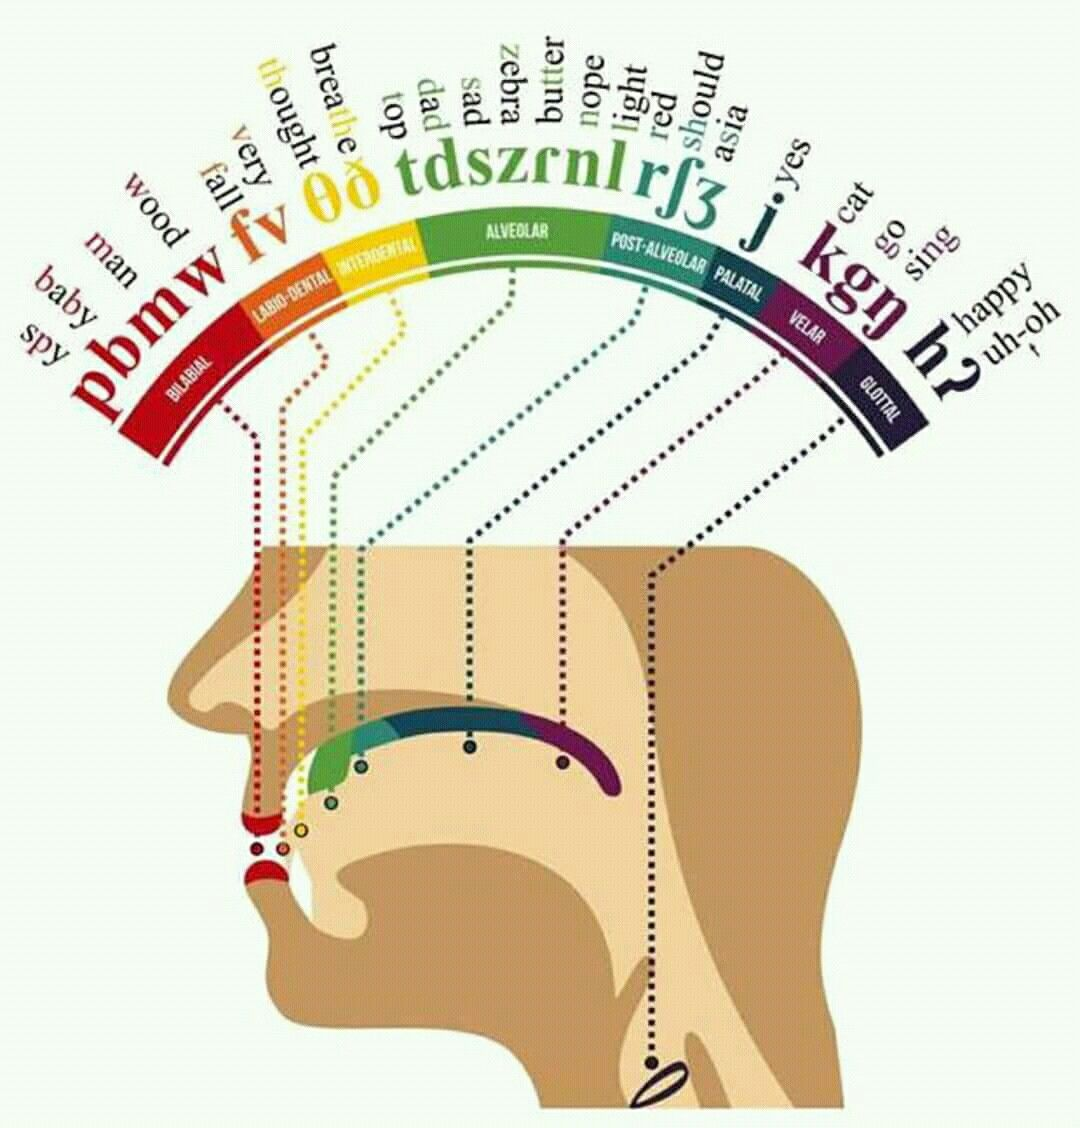 Language Sounds And Place In The Mouth They Come From